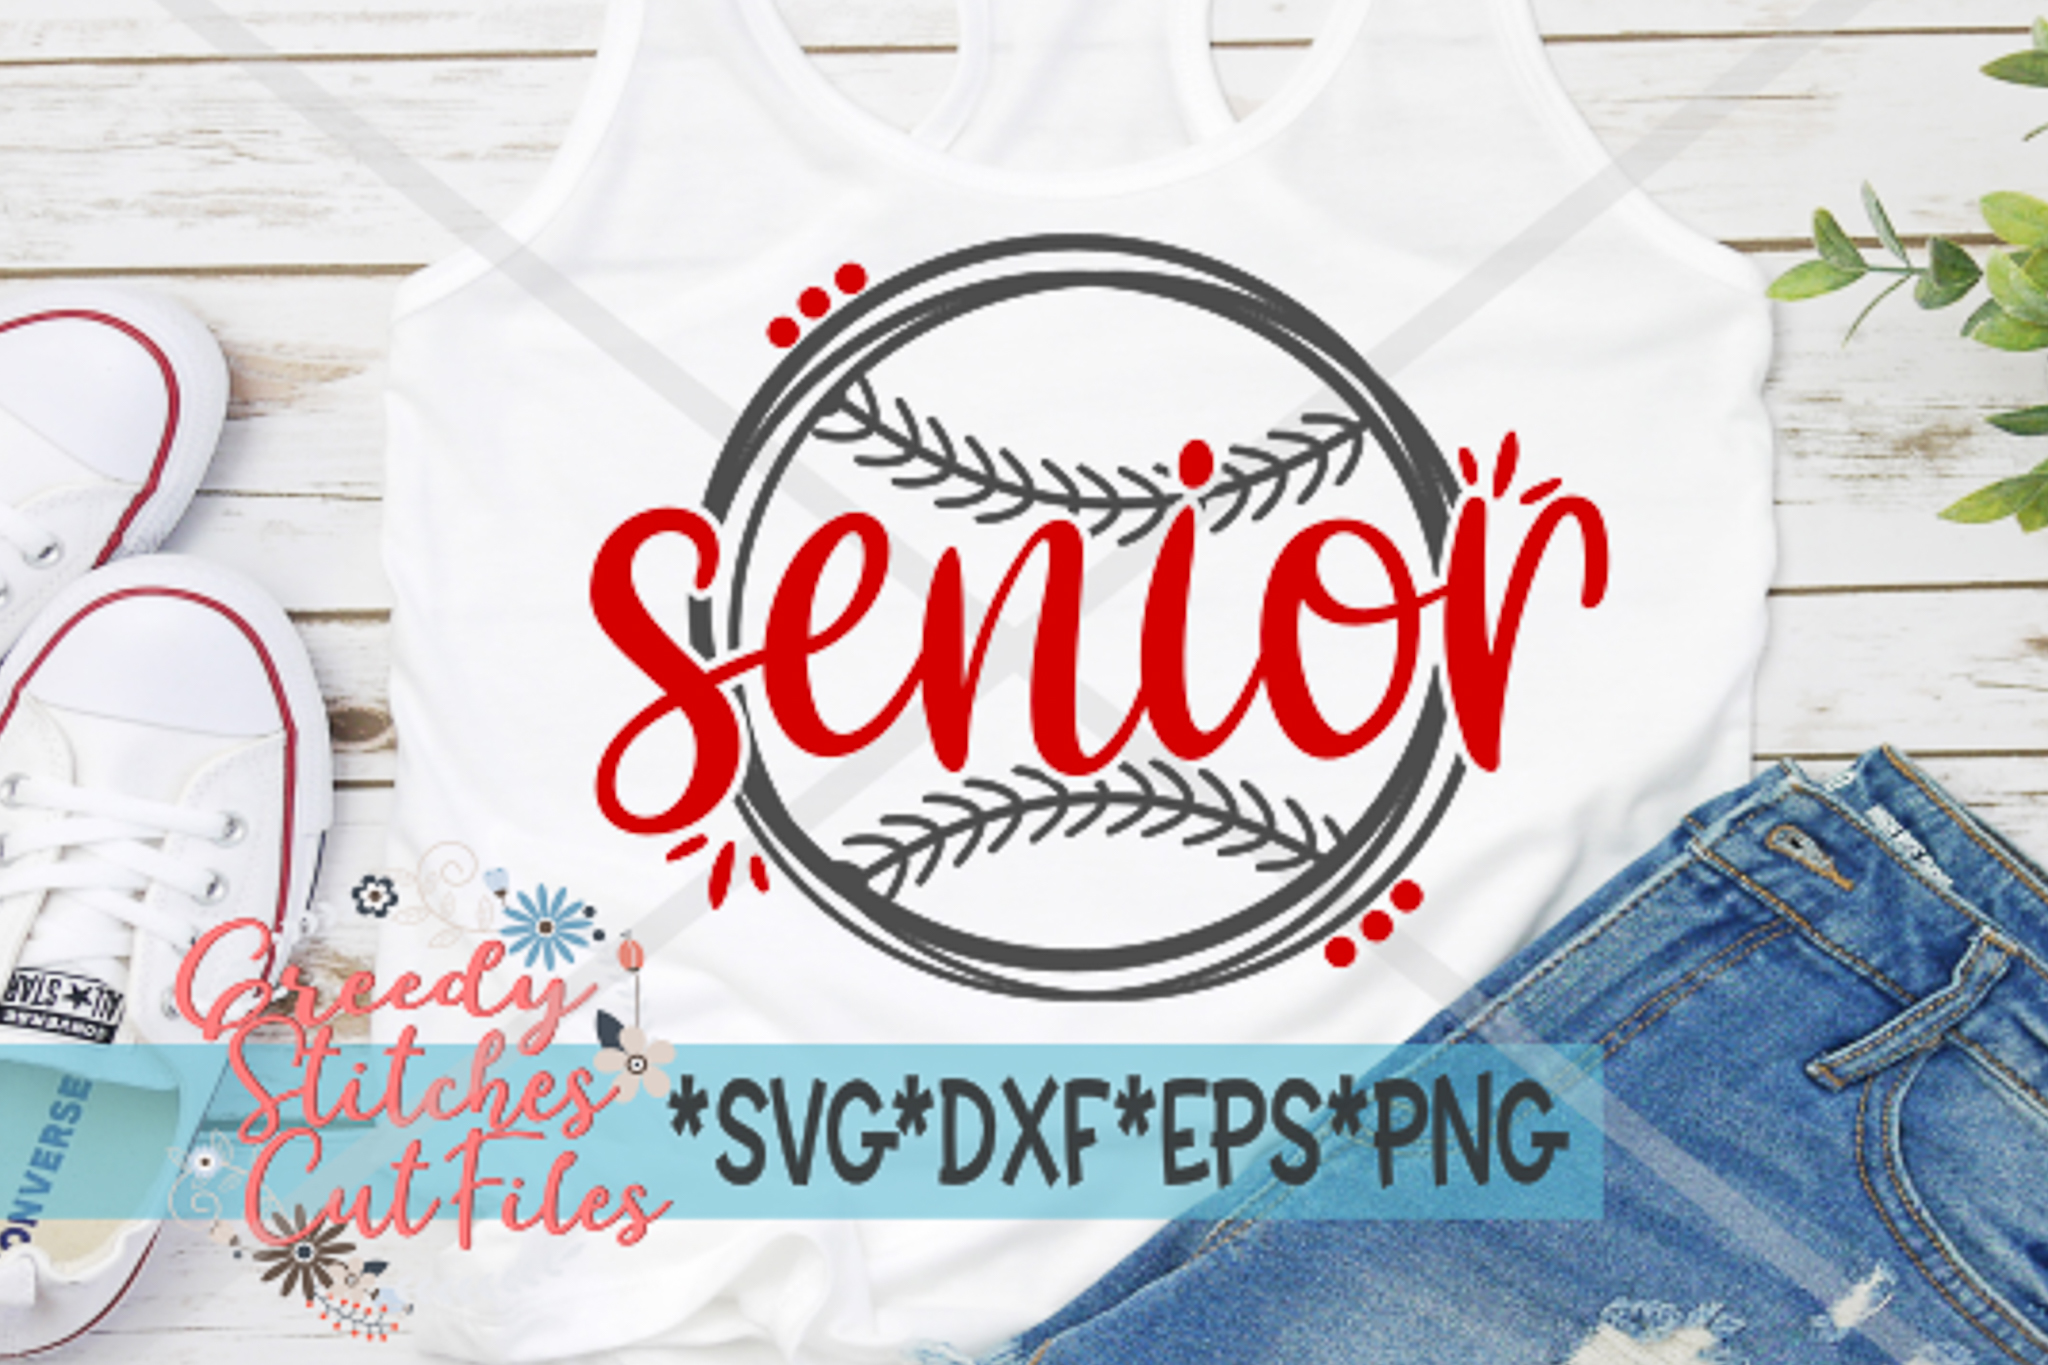 Senior Softball SVG, DXF, EPS, PNG Files example image 5